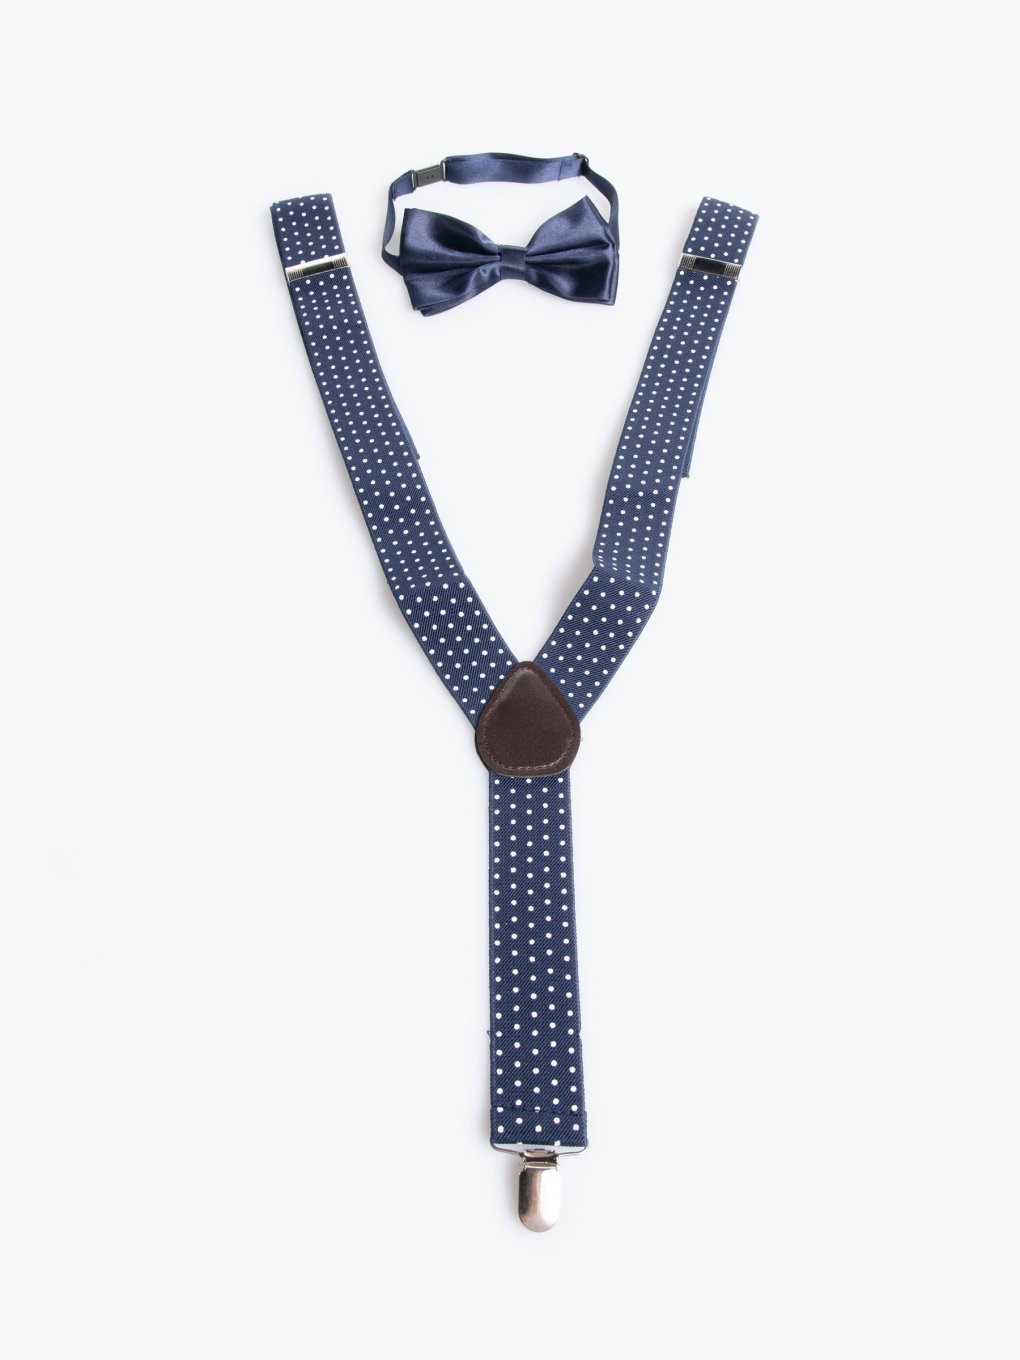 Polka dot braces and bow tie set